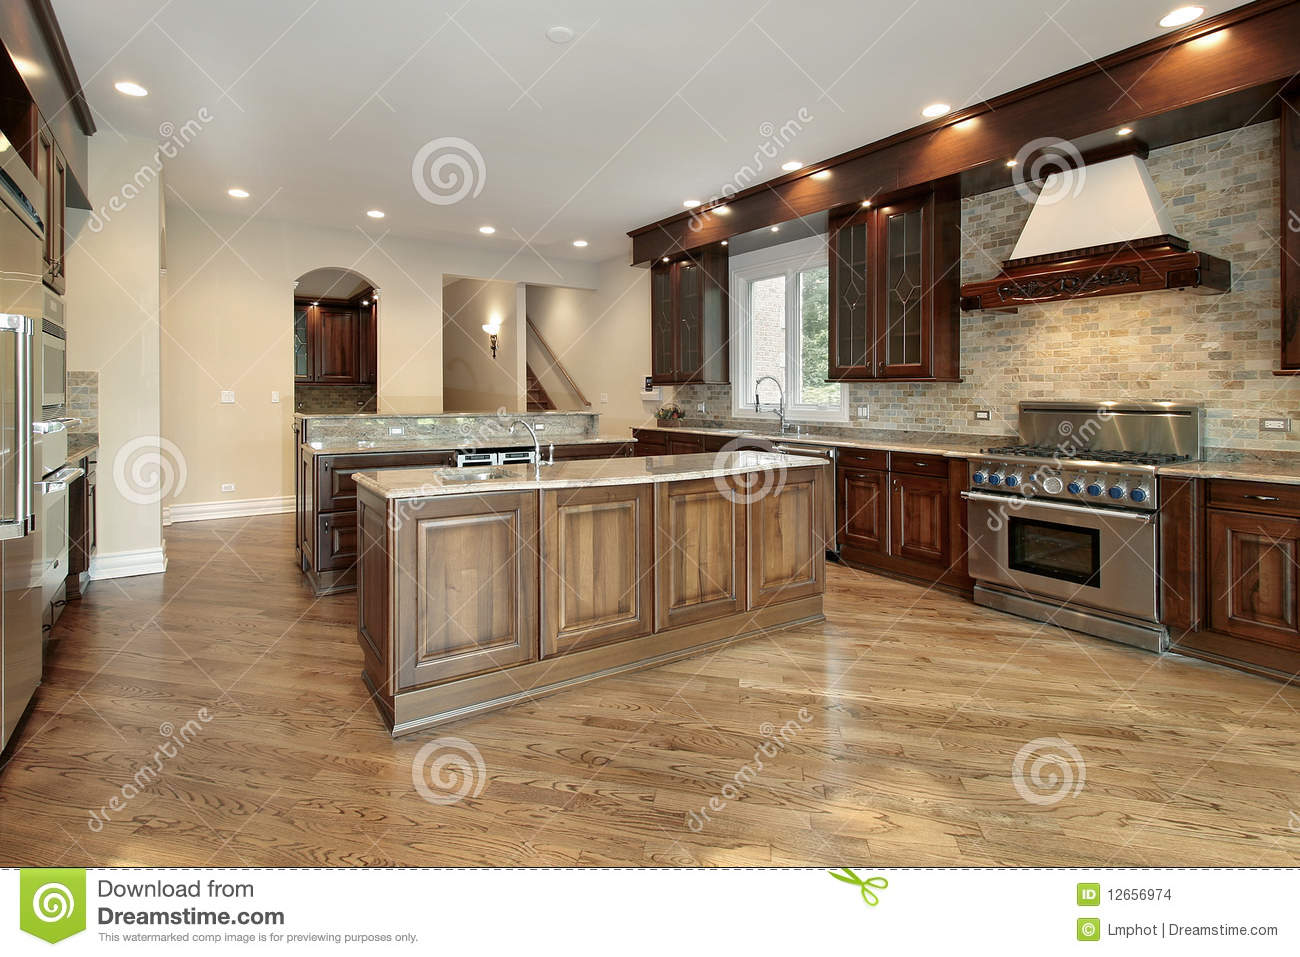 Kitchen in new construction home stock images image for Building a new kitchen